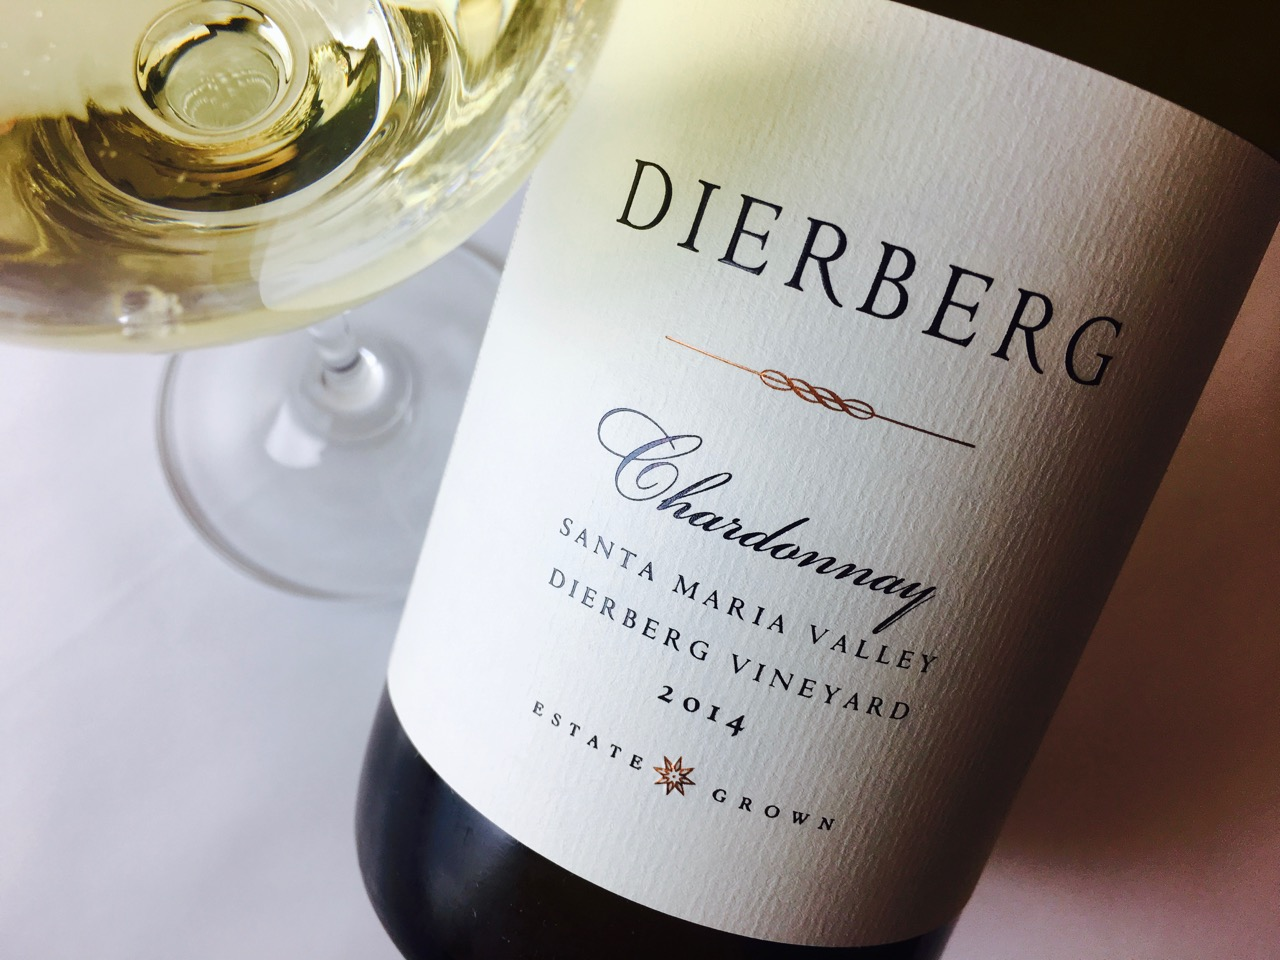 2014 Dierberg Chardonnay Estate Santa Maria Valley